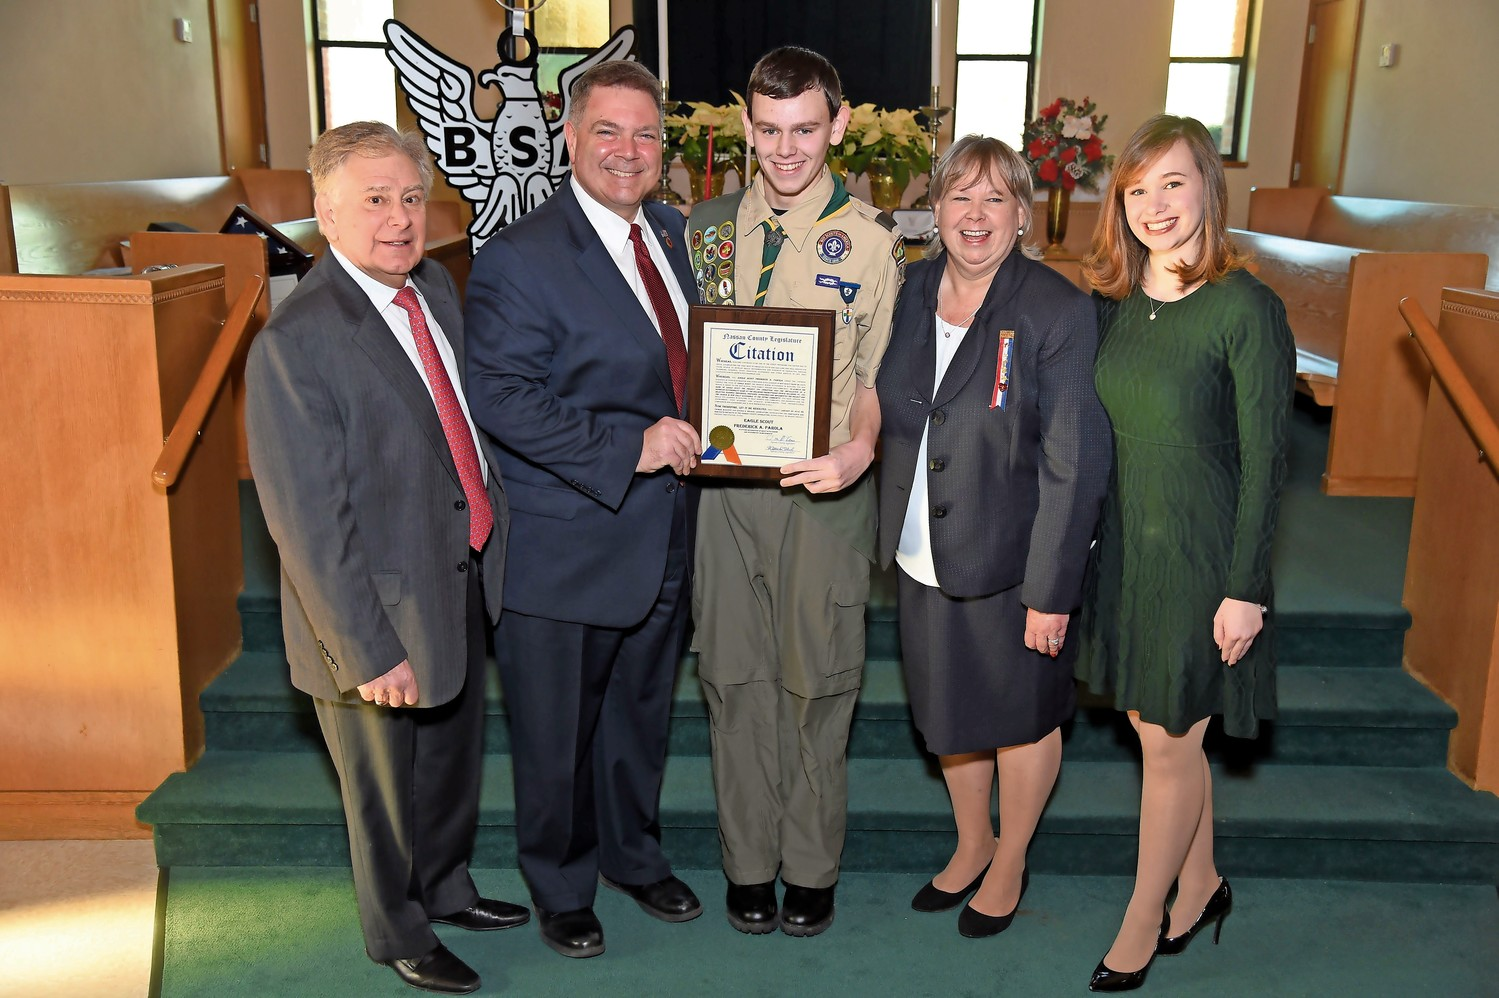 New Eagle Scout Frederick A. Parola, center, who advanced to the rank at a Court of Honor ceremony on Jan. 20, posed with, from left, Fred Parola, Legislator Steve Rhoads, Norene Parola and Christine Parola.